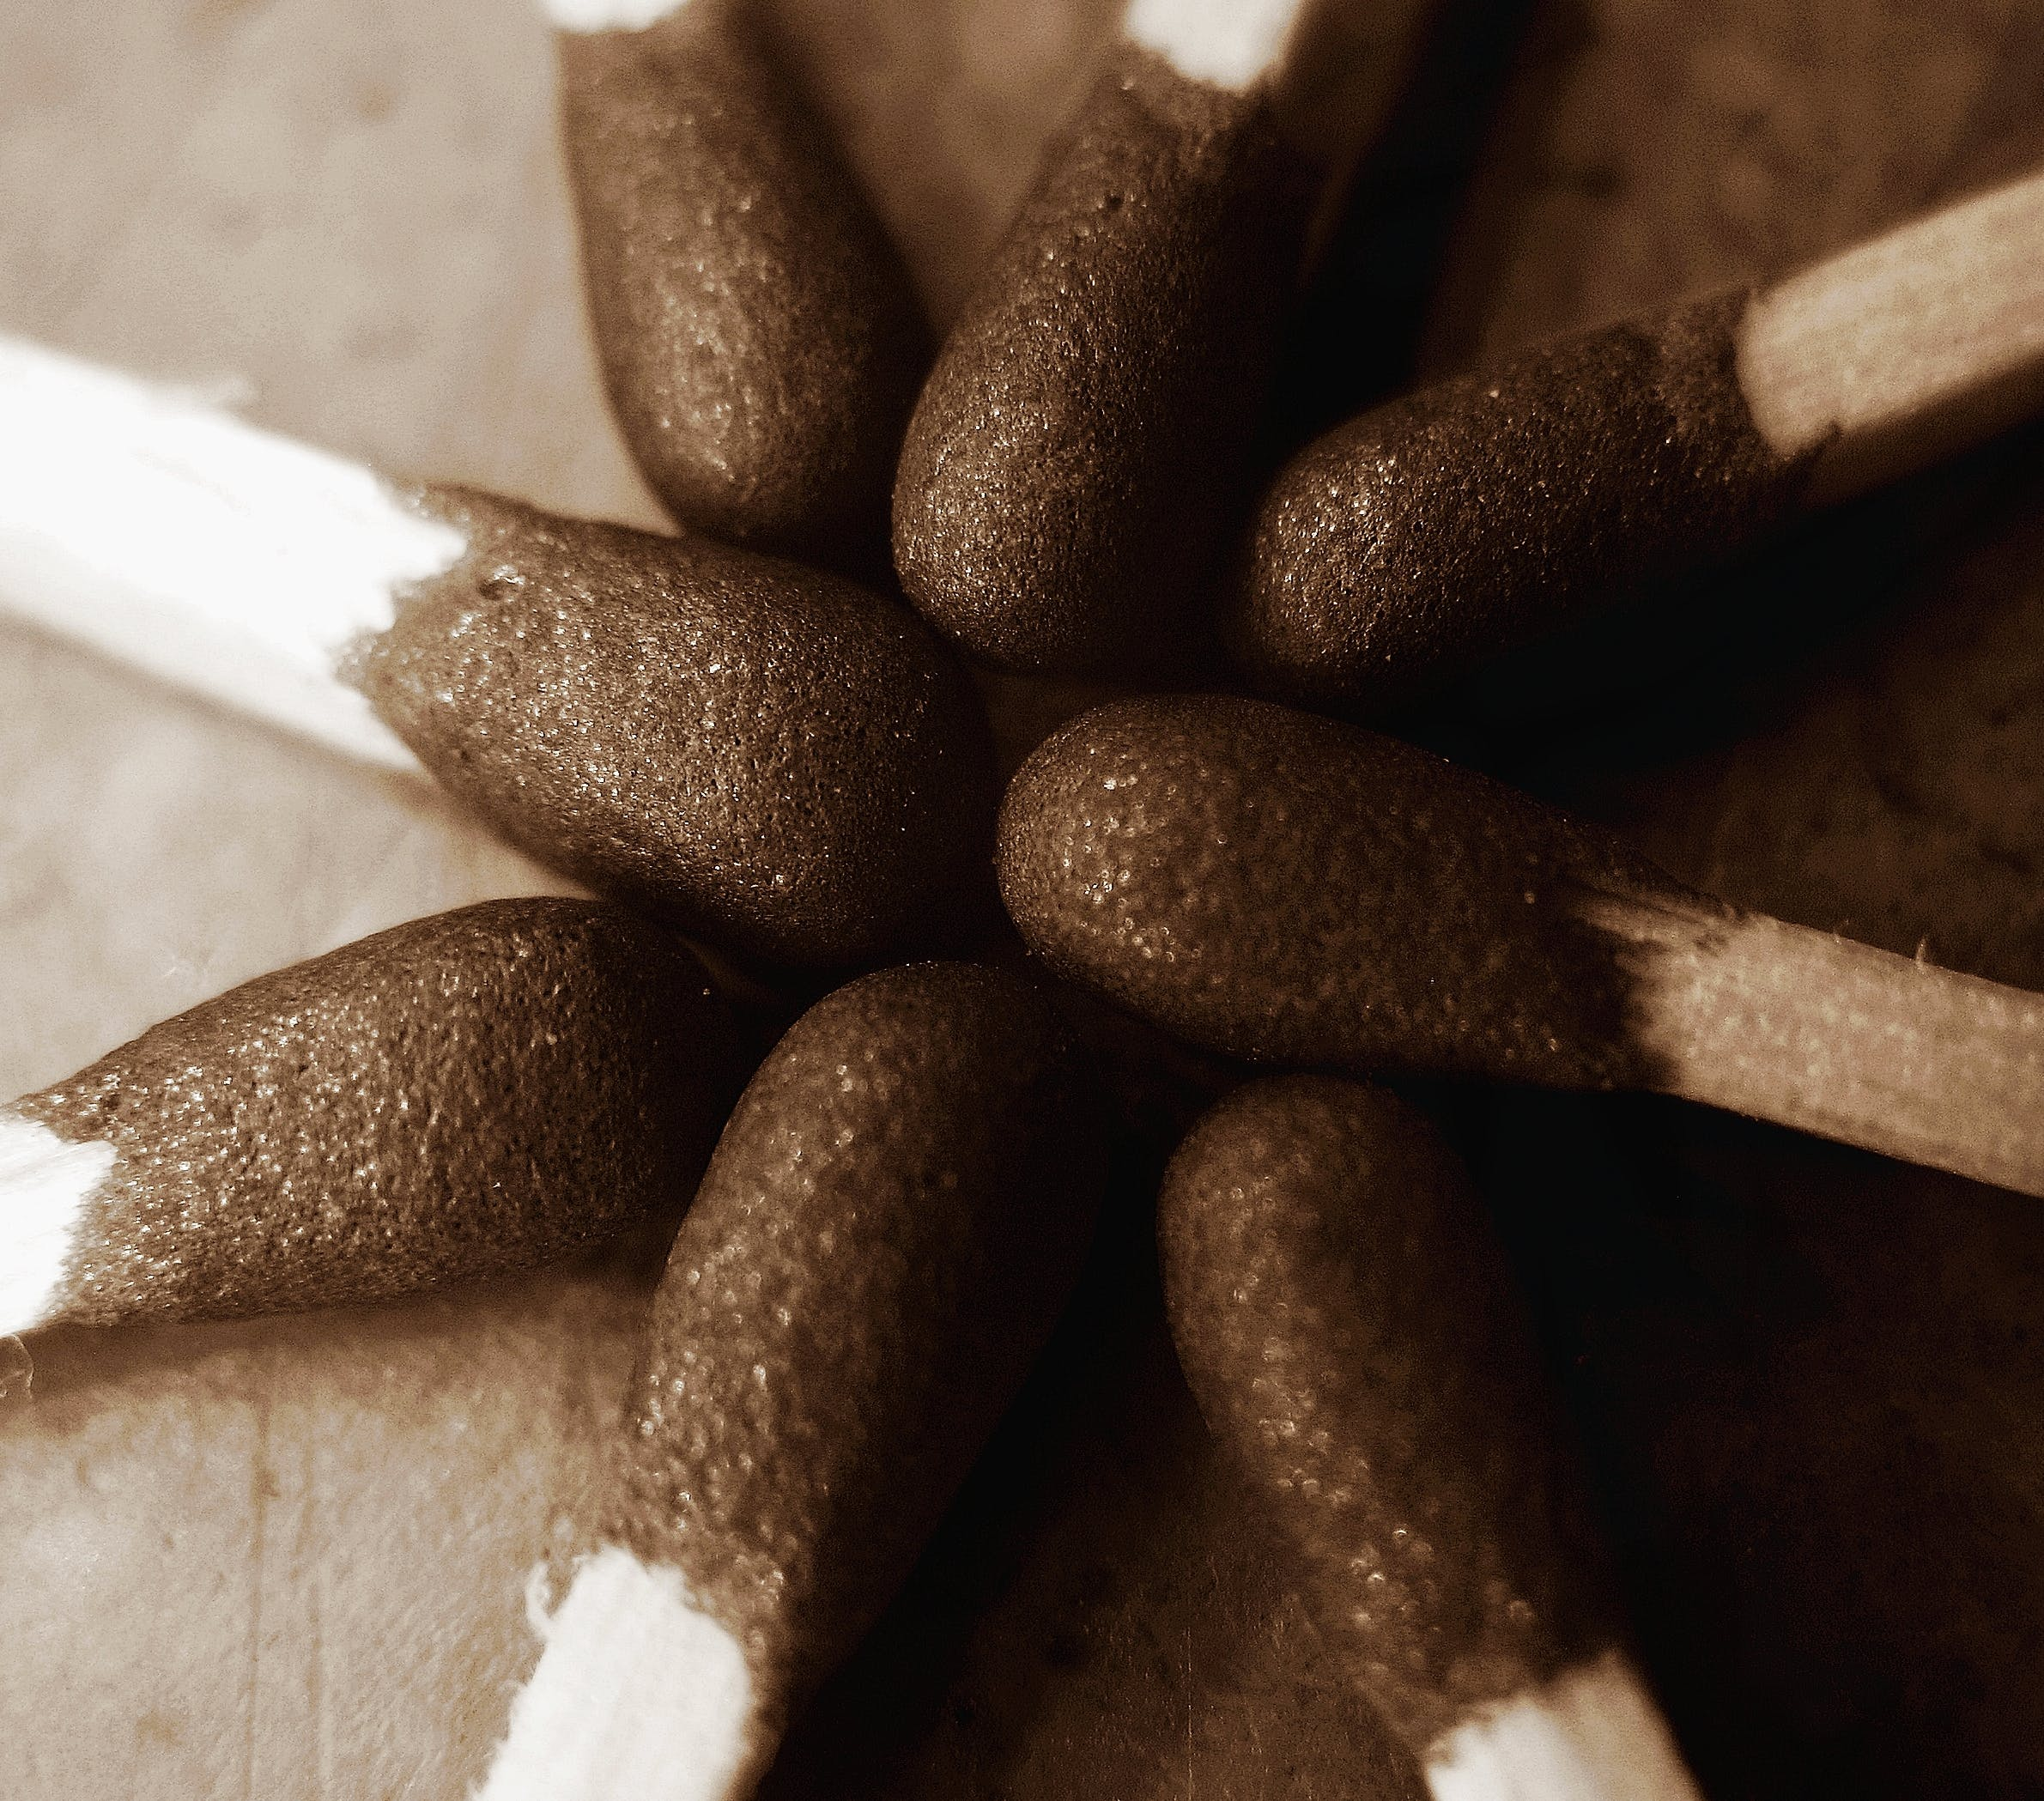 Free stock photo of match, match stick, matchbox, sepia